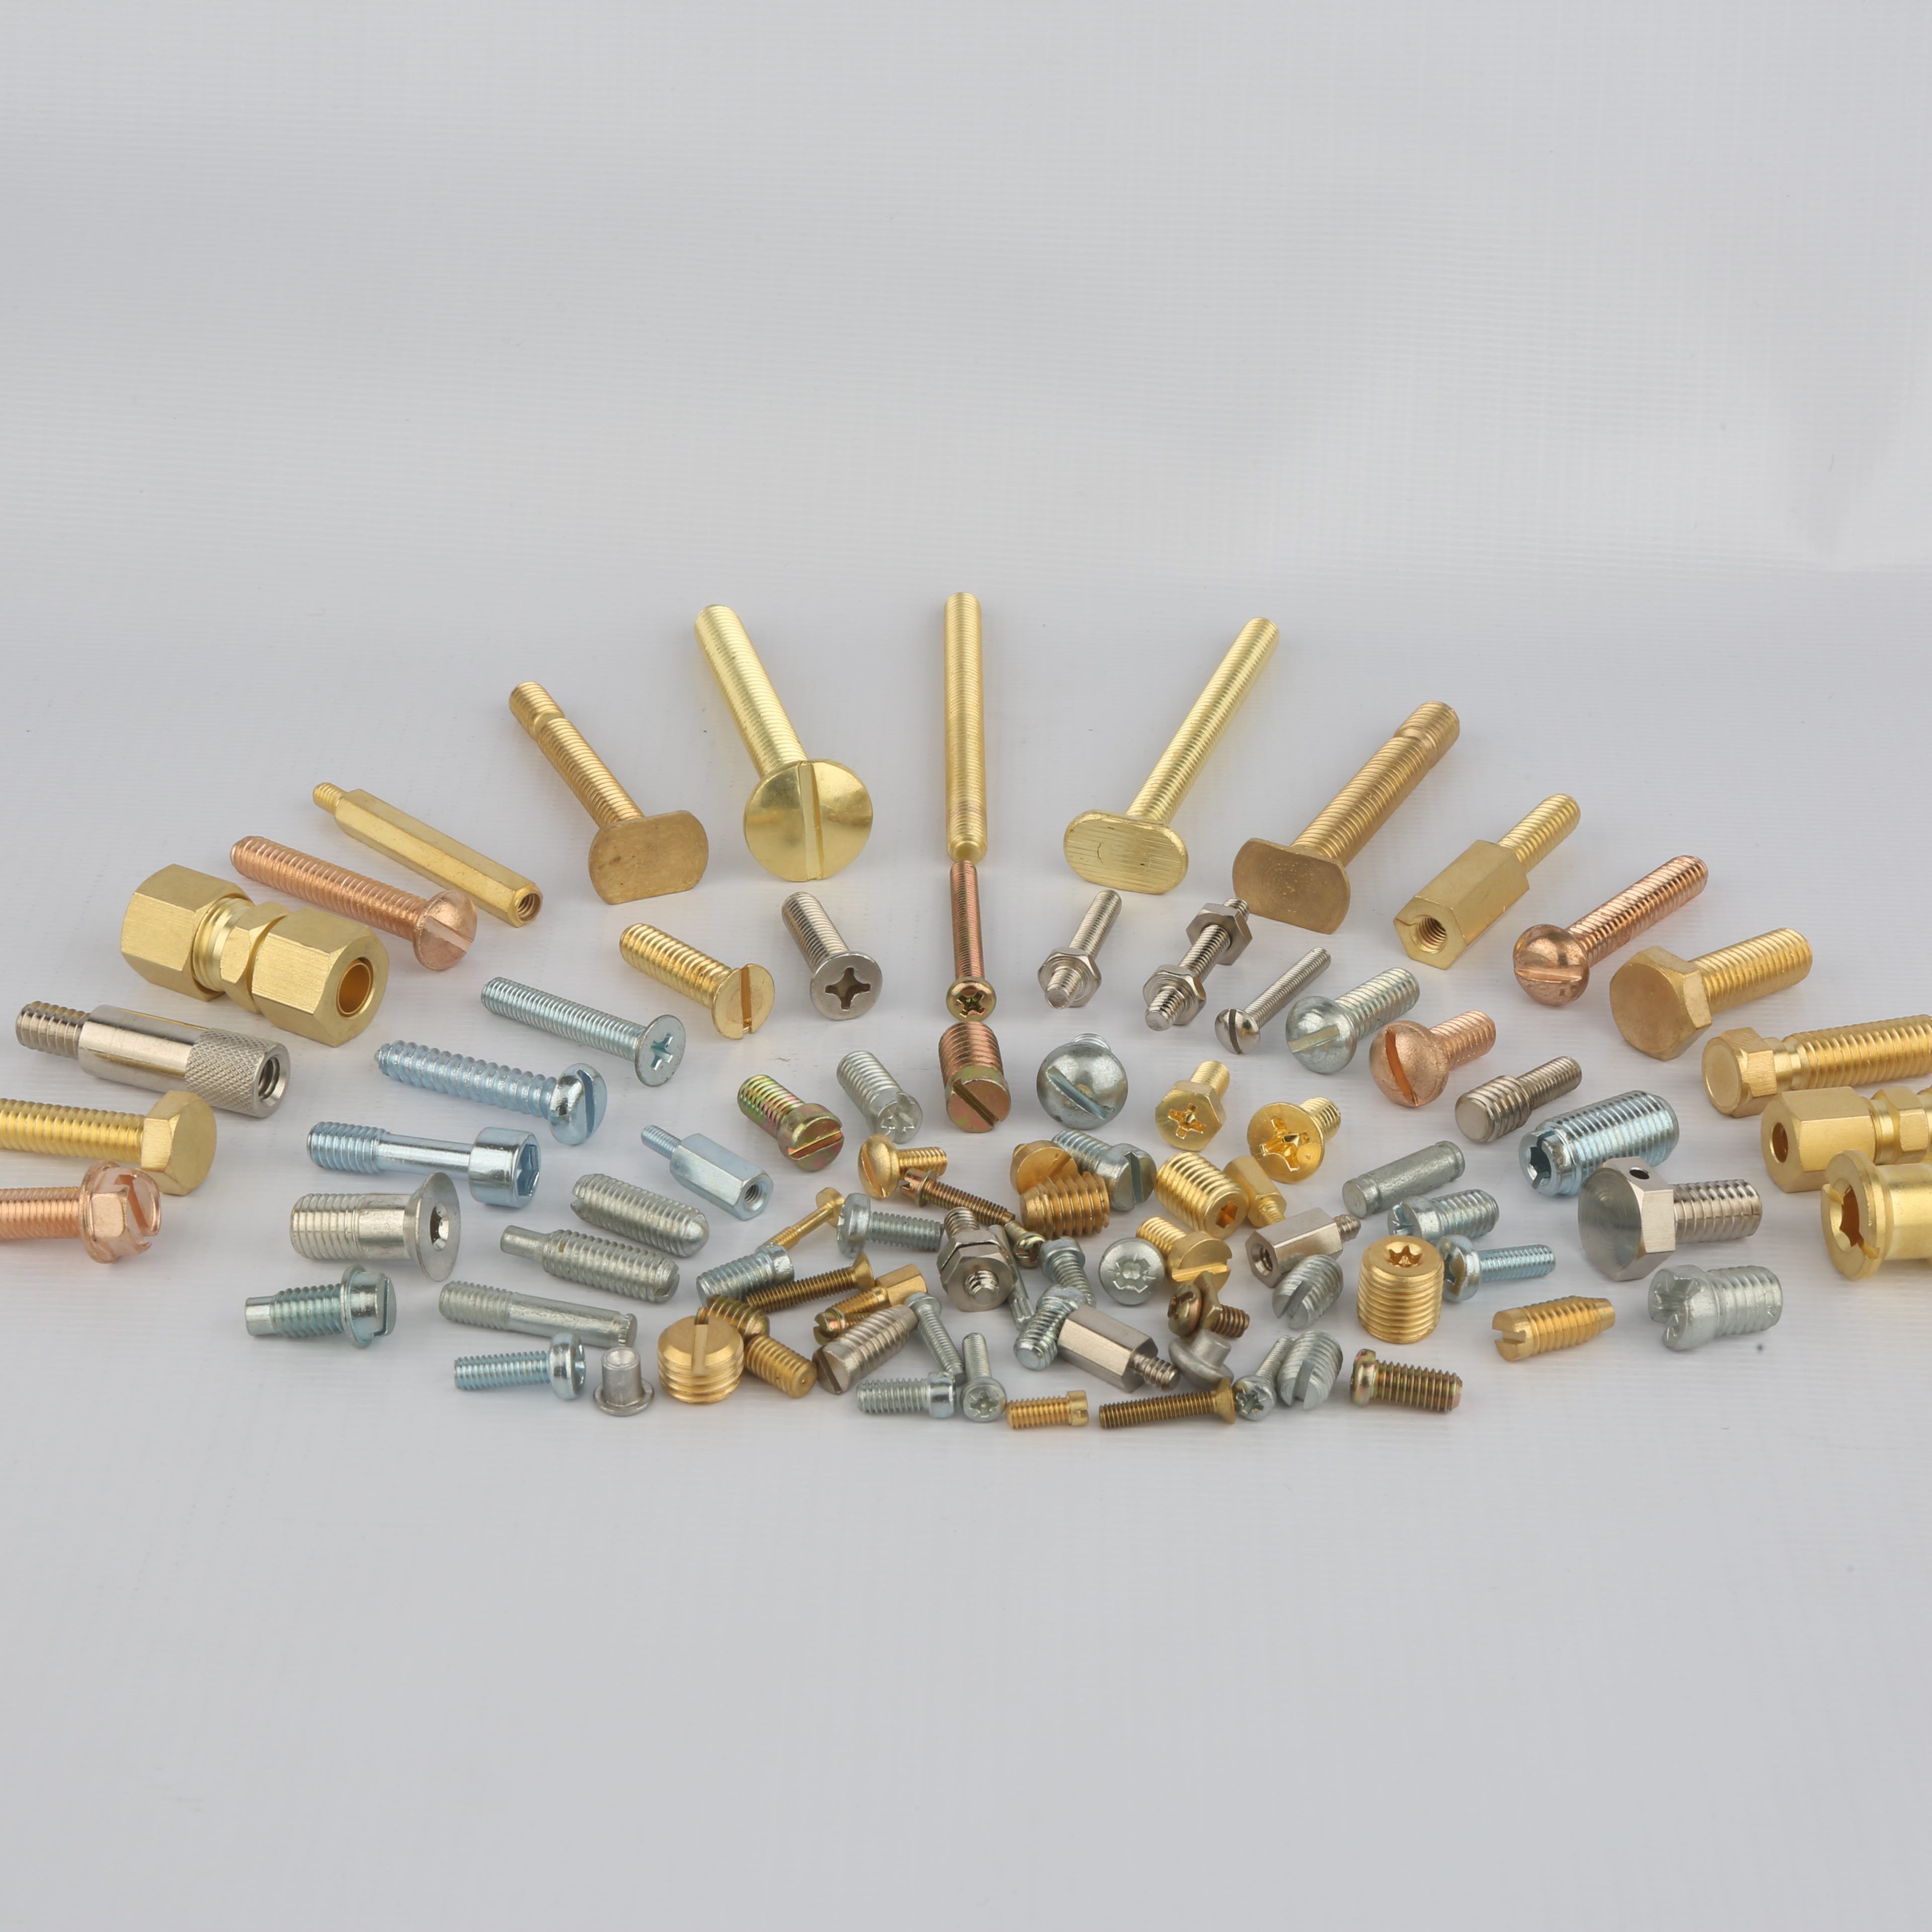 Fasteners, Nuts and Bolts, Forged Components